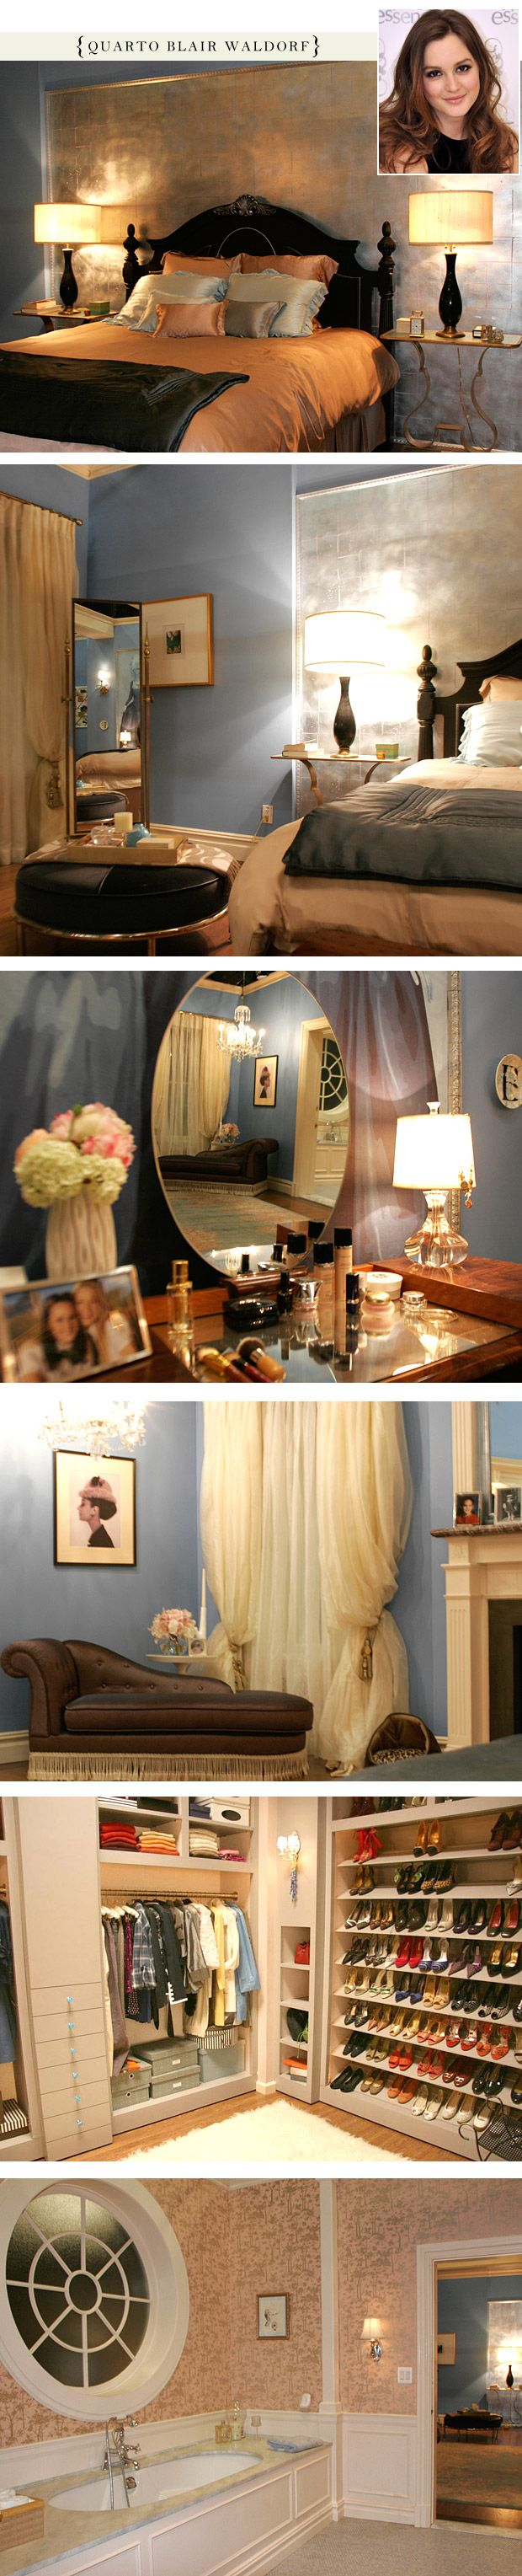 Genial Blair Waldorfu0027s Bedroom From Gossip Girl